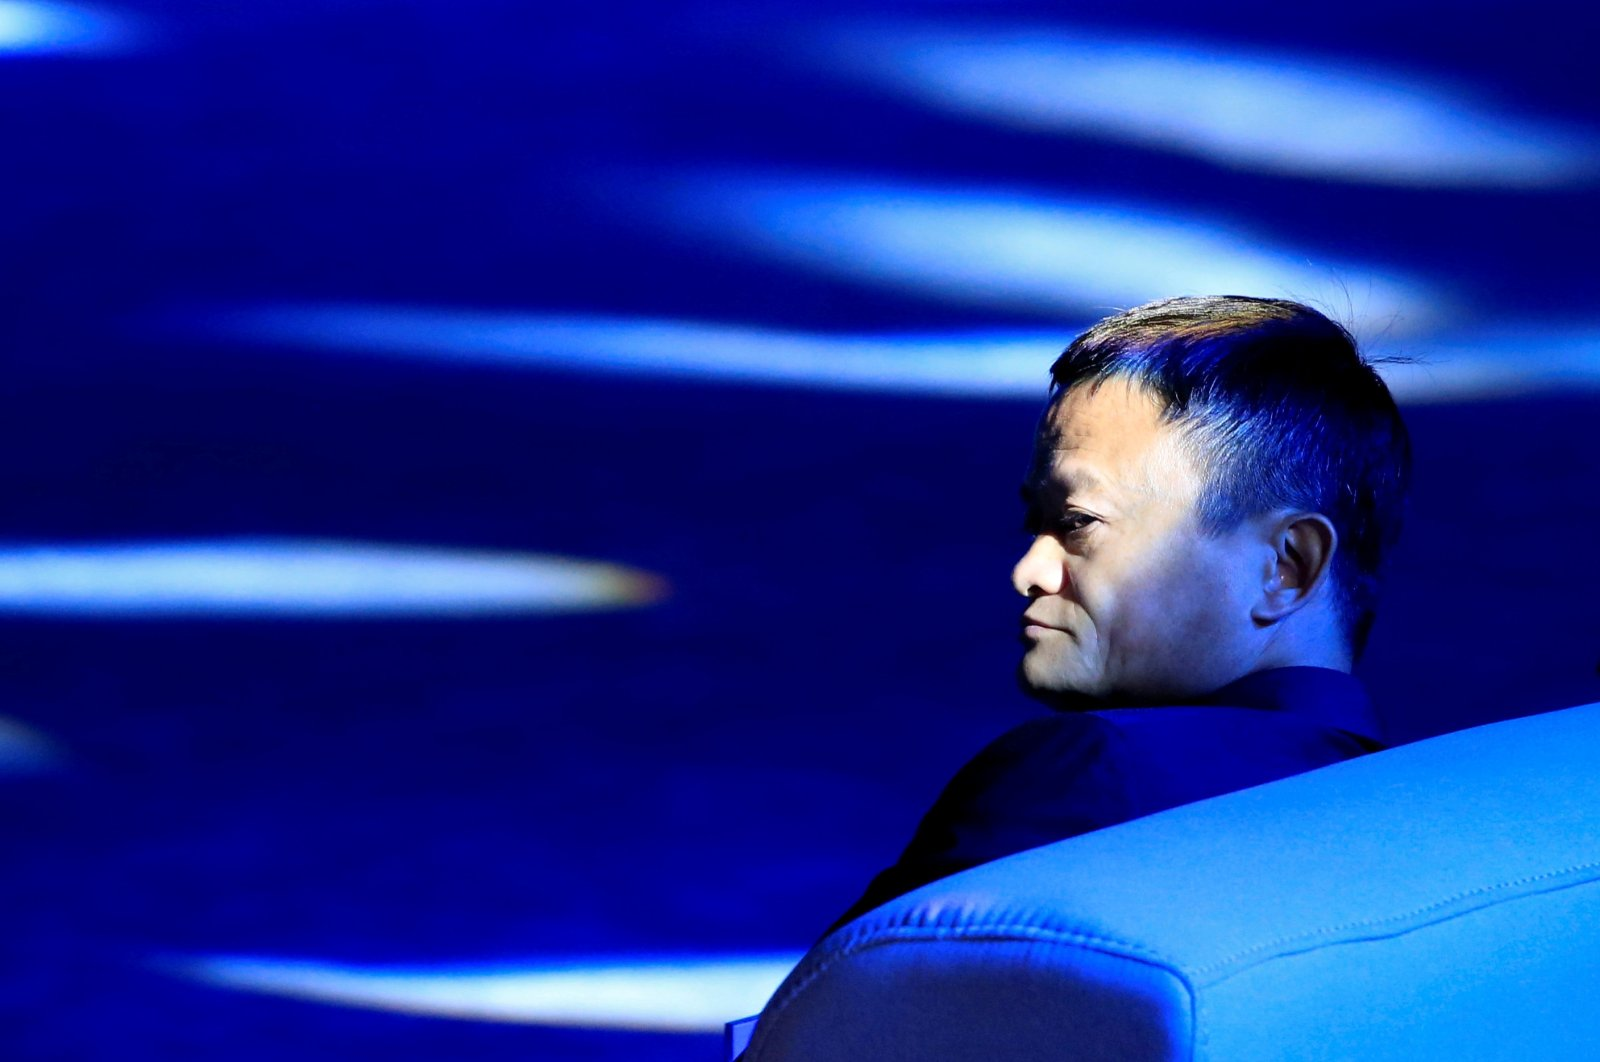 Alibaba Group Co-founder and Executive Chairman Jack Ma attends the World Artificial Intelligence Conference (WAIC) in Shanghai, China, Sept. 17, 2018. (Reuters Photo)